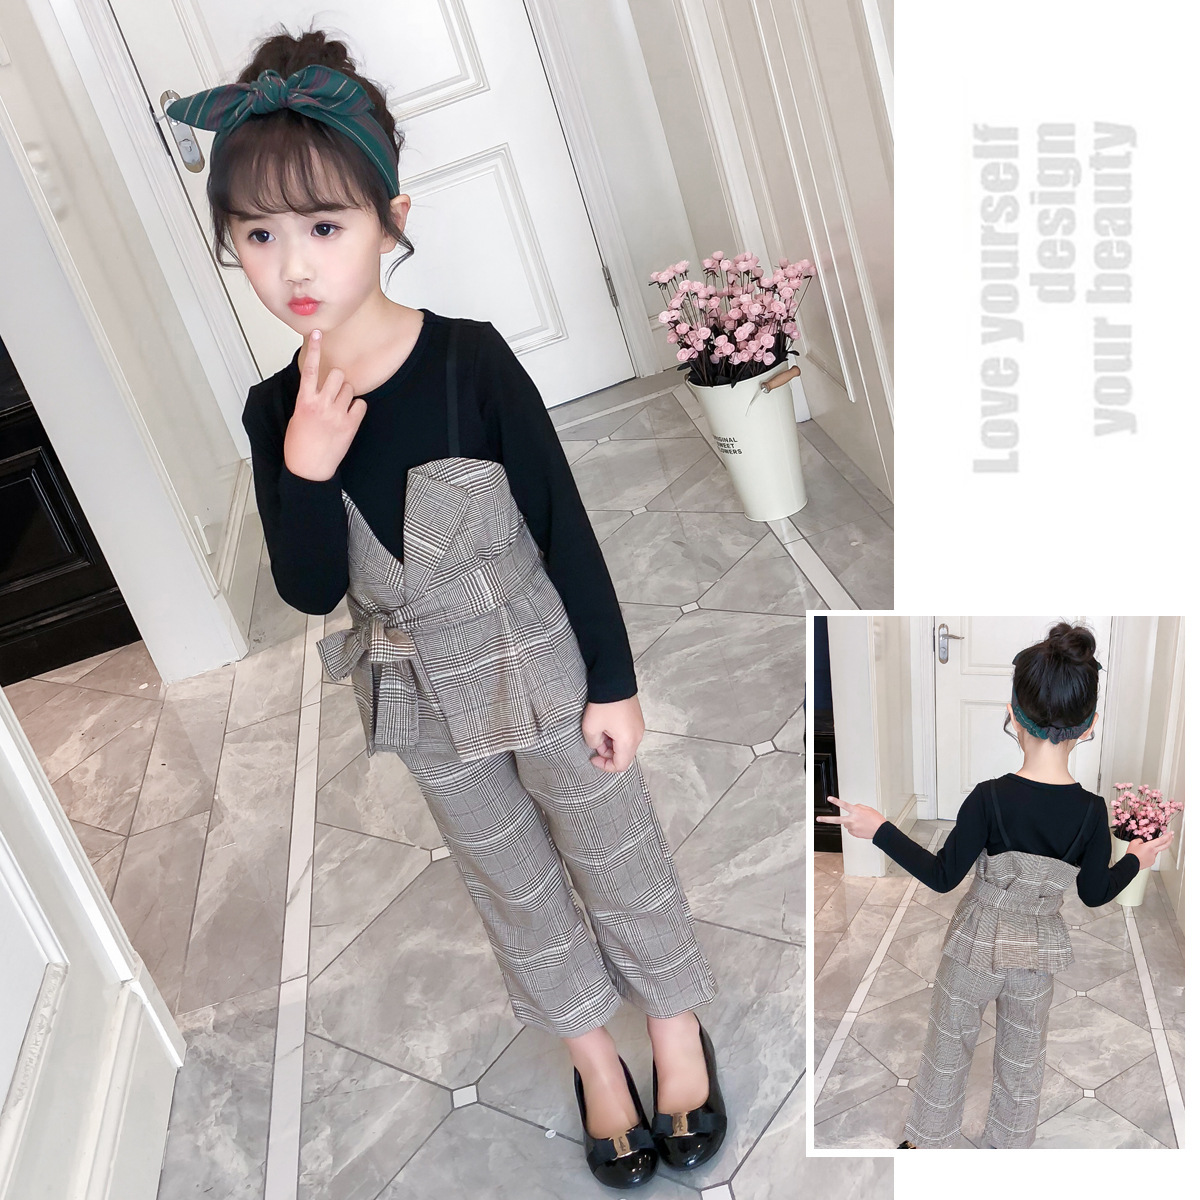 Prom Clothing For Girls Teenagers Baby Girl Clothes Set Spring Long Sleeve Fashion Shirt + Plaid Pant 4-13 Years Ensemble Fille europe hot sale baby girls long sleeve velvet plaid top pant suit fashion childrens casual clothes princess clothing 16d1224